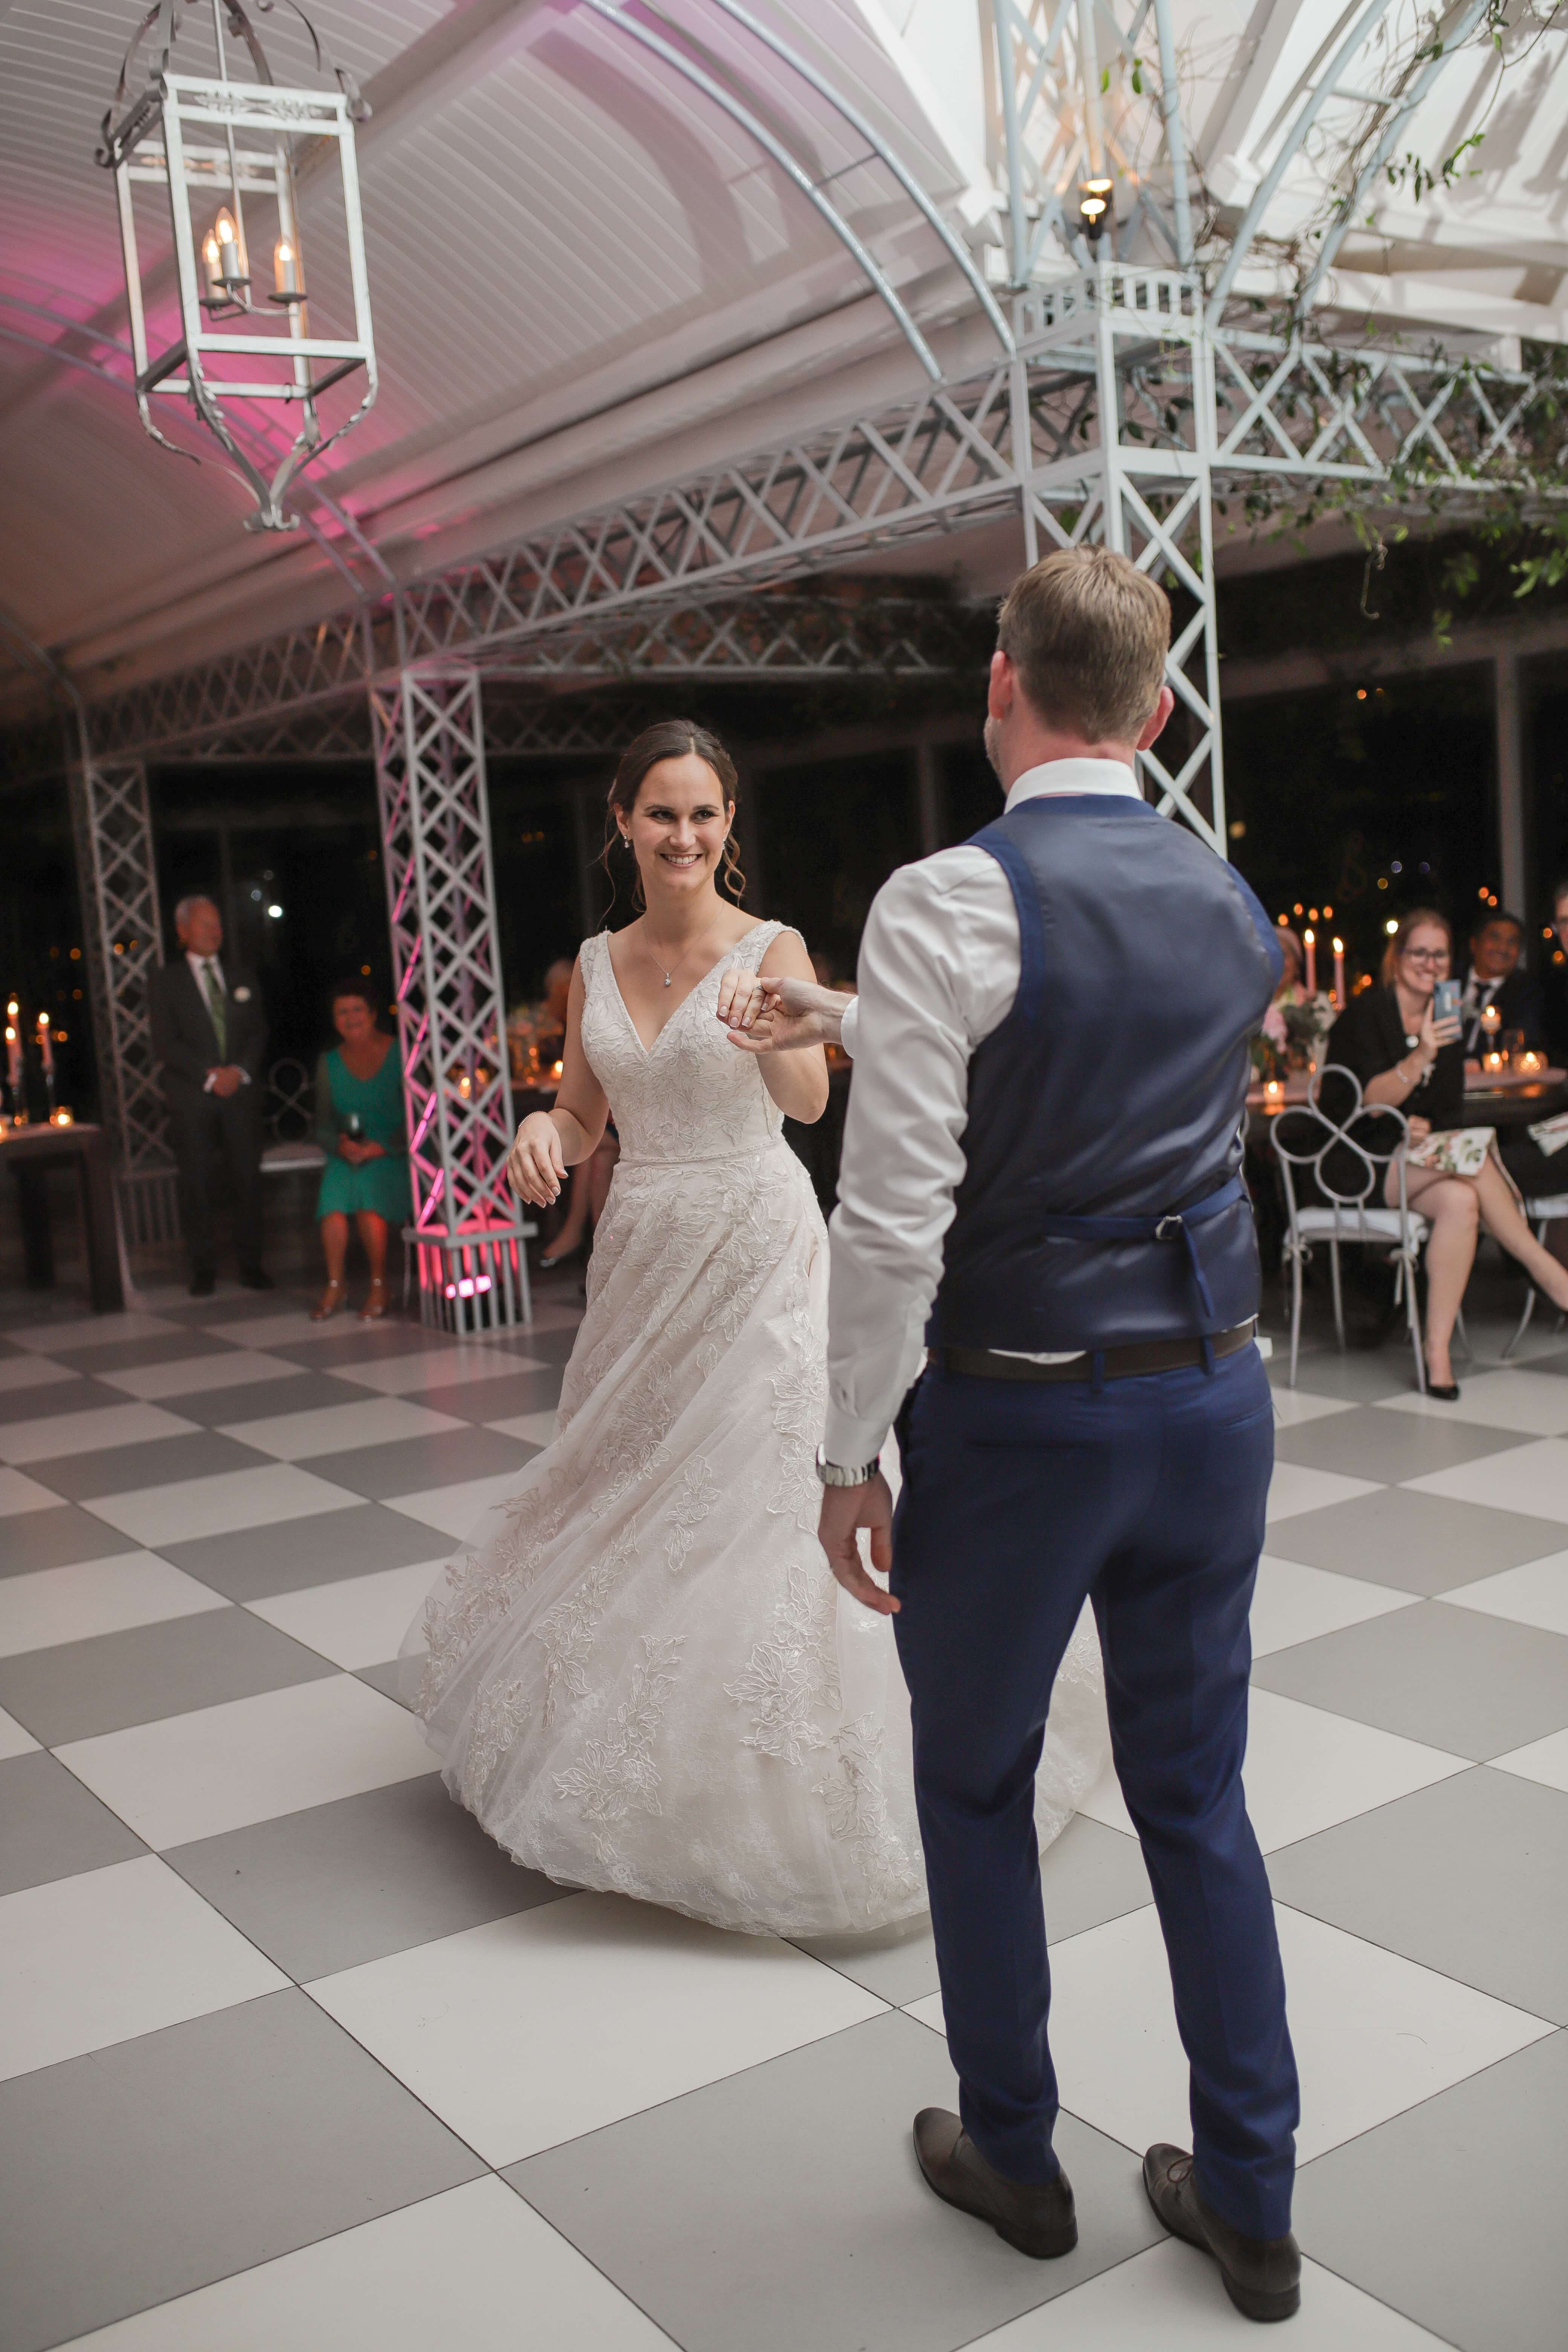 Newly wed couple dancing their first dance to an amazing song.